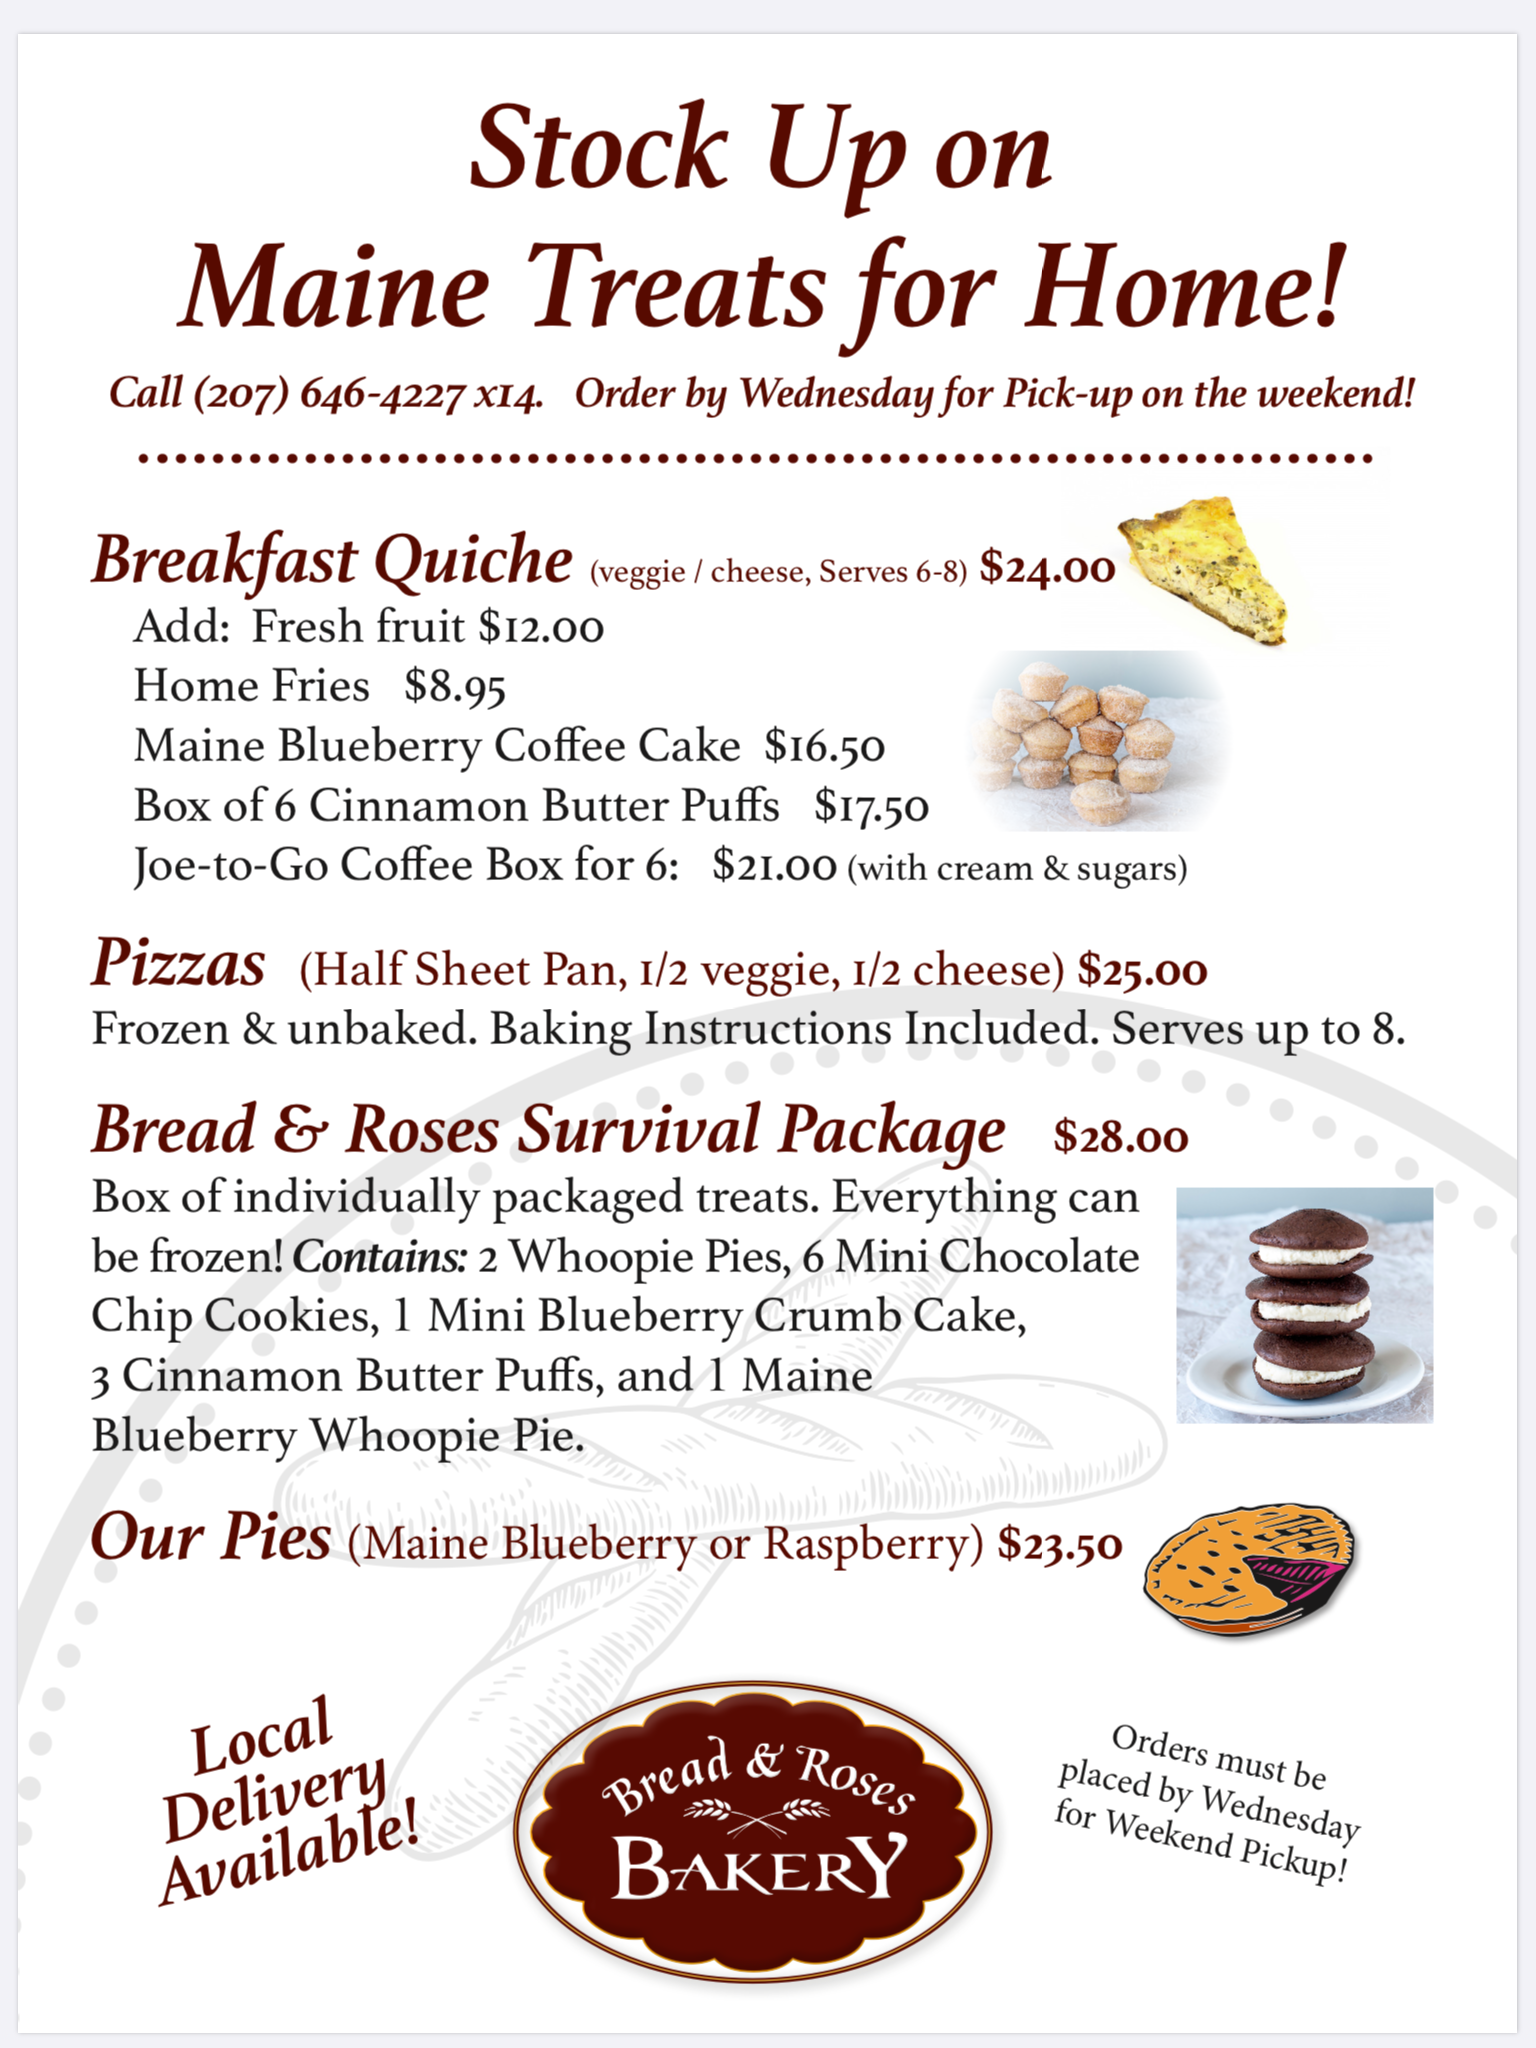 Stock Up on Maine Treats for Home!